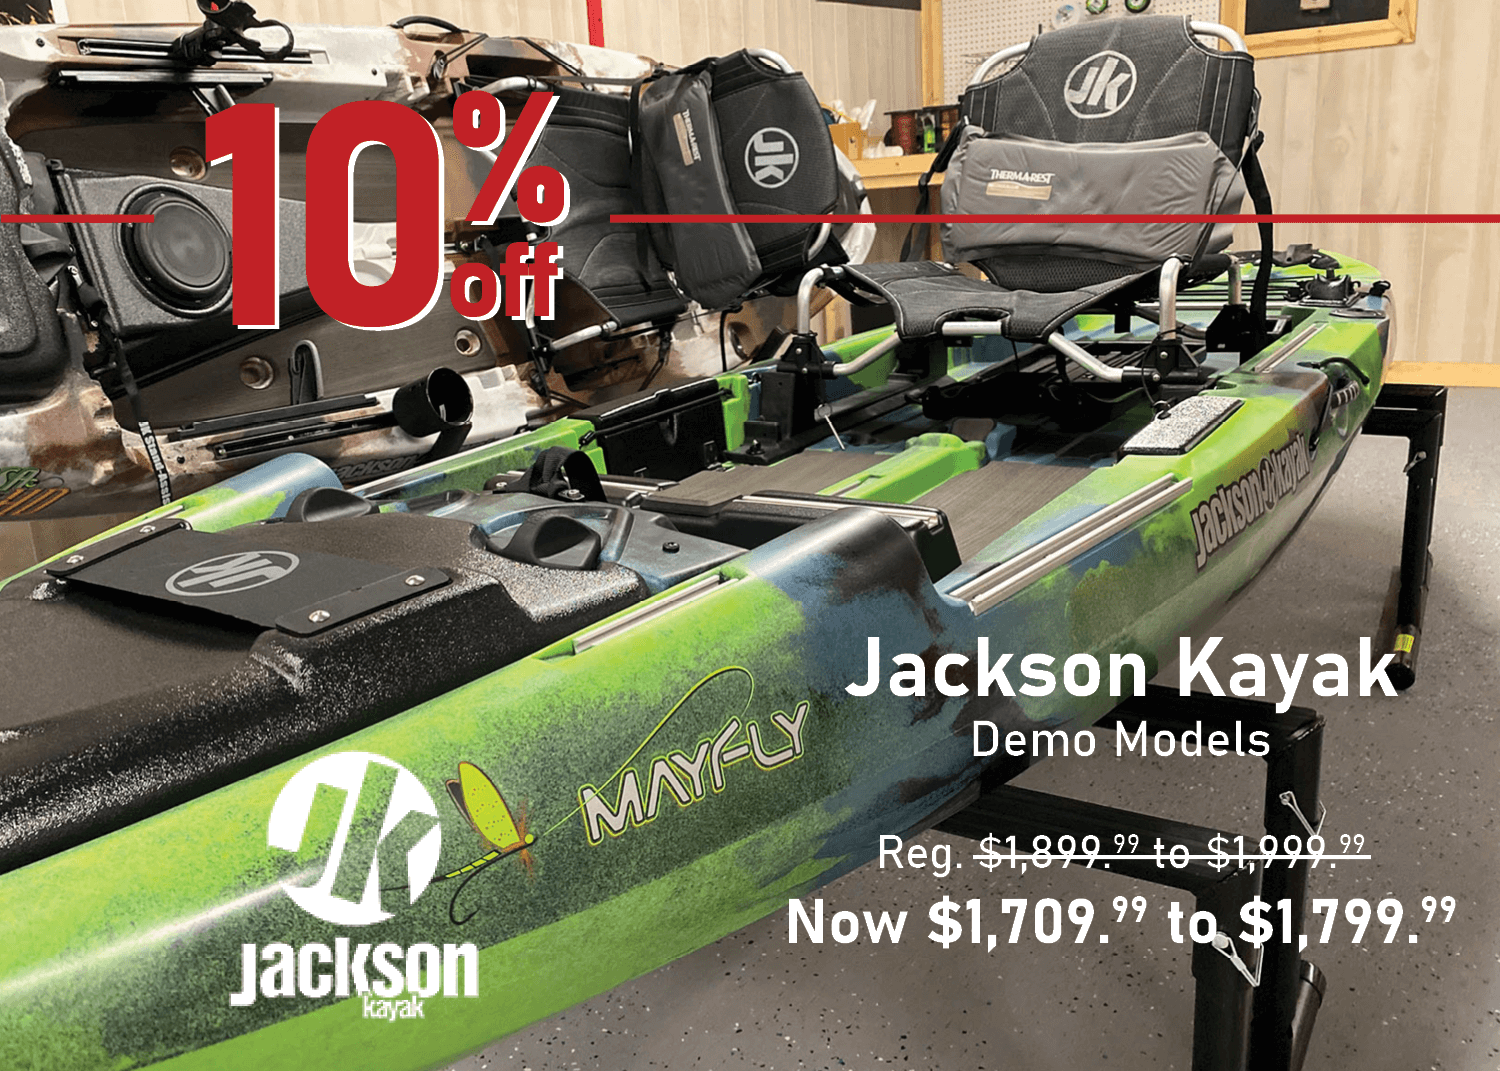 Jackson Kayak Demo Models